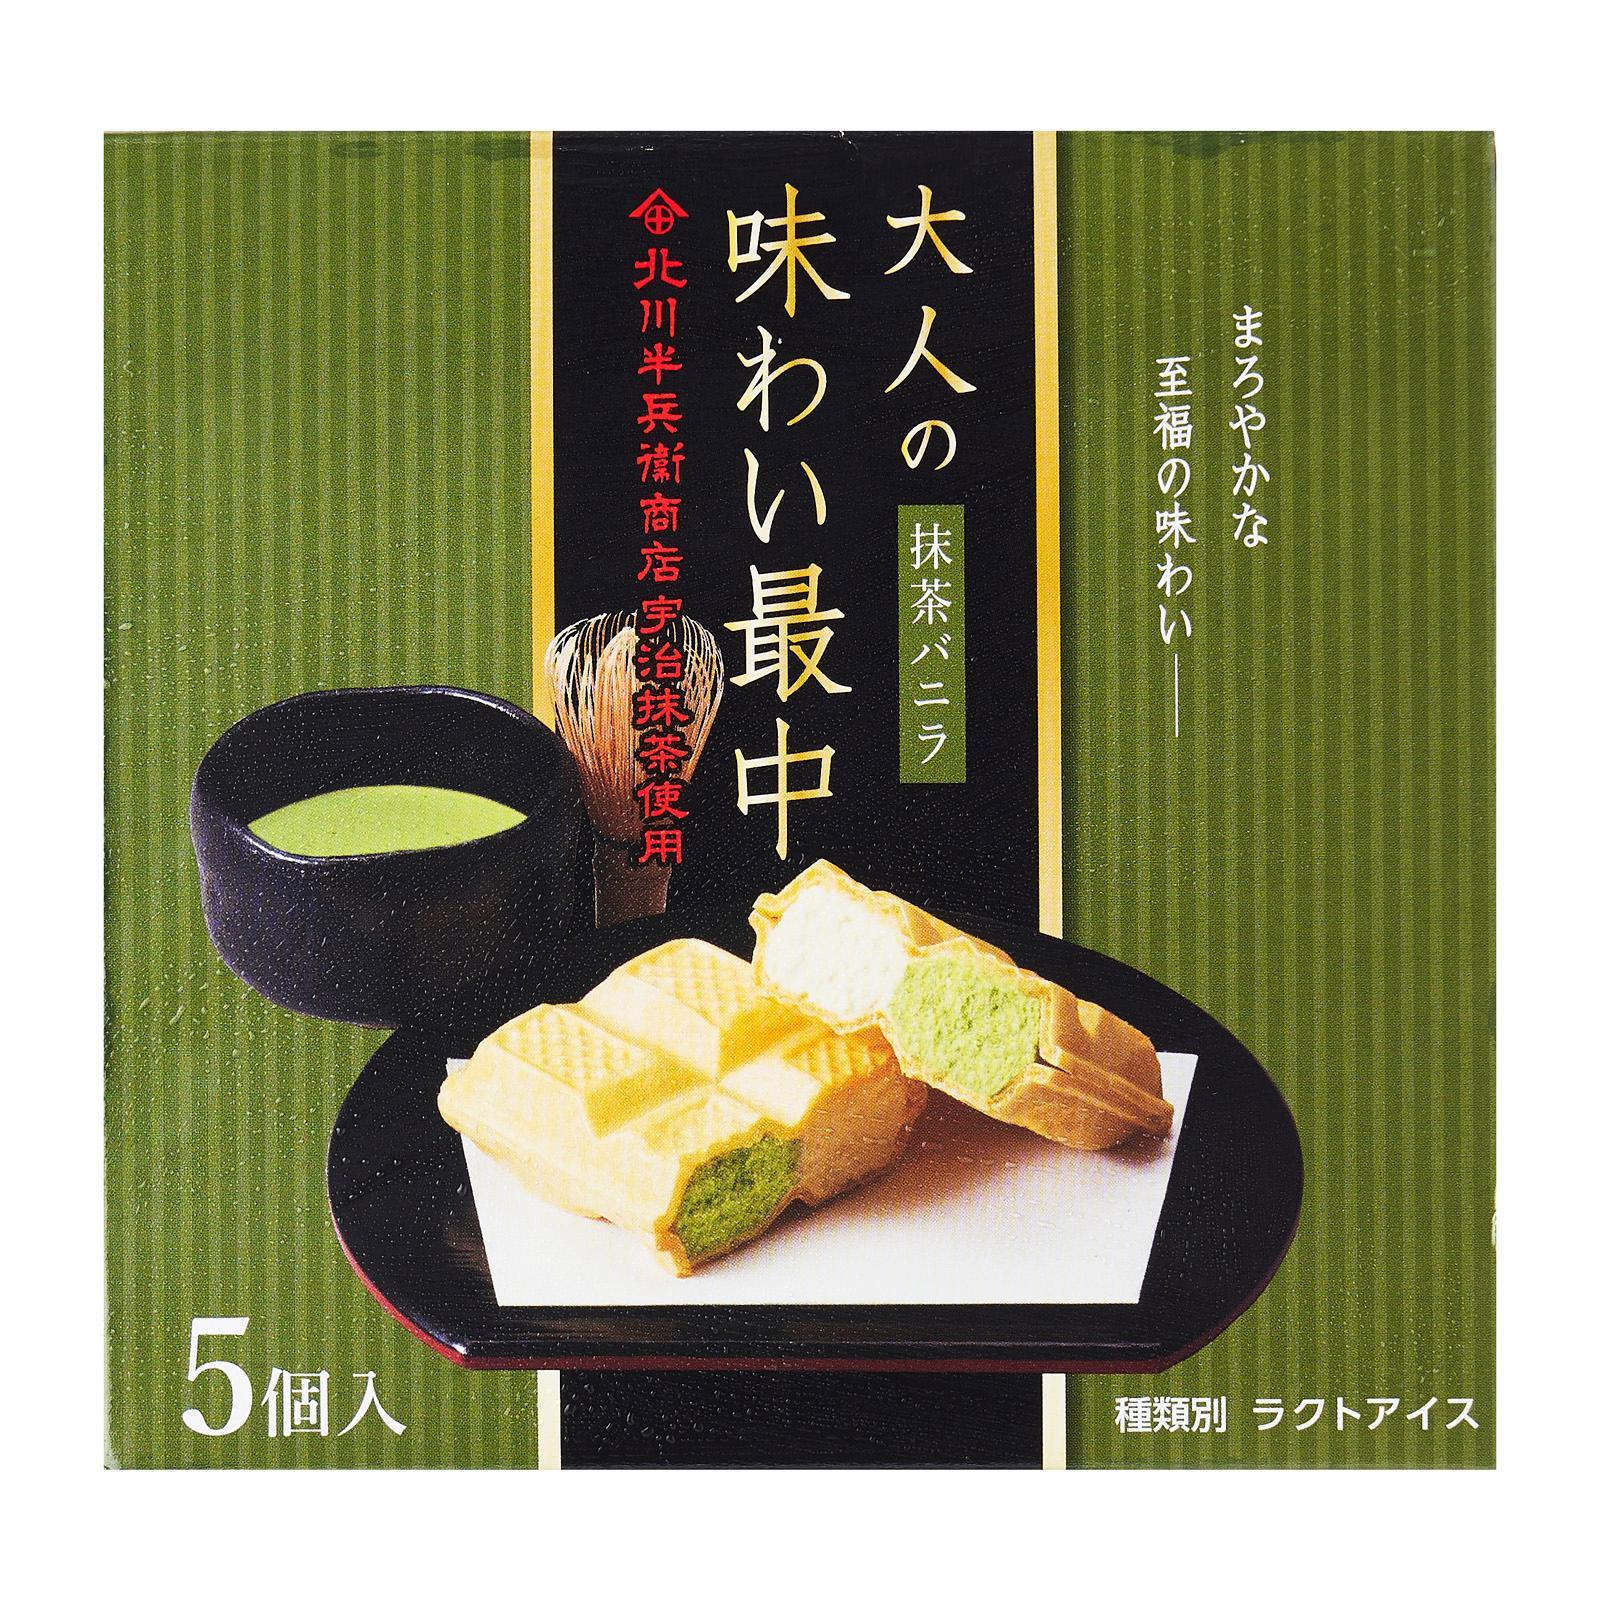 Toyo Matcha And Vanilla Monaka Ice Cream Sandwich - Frozen